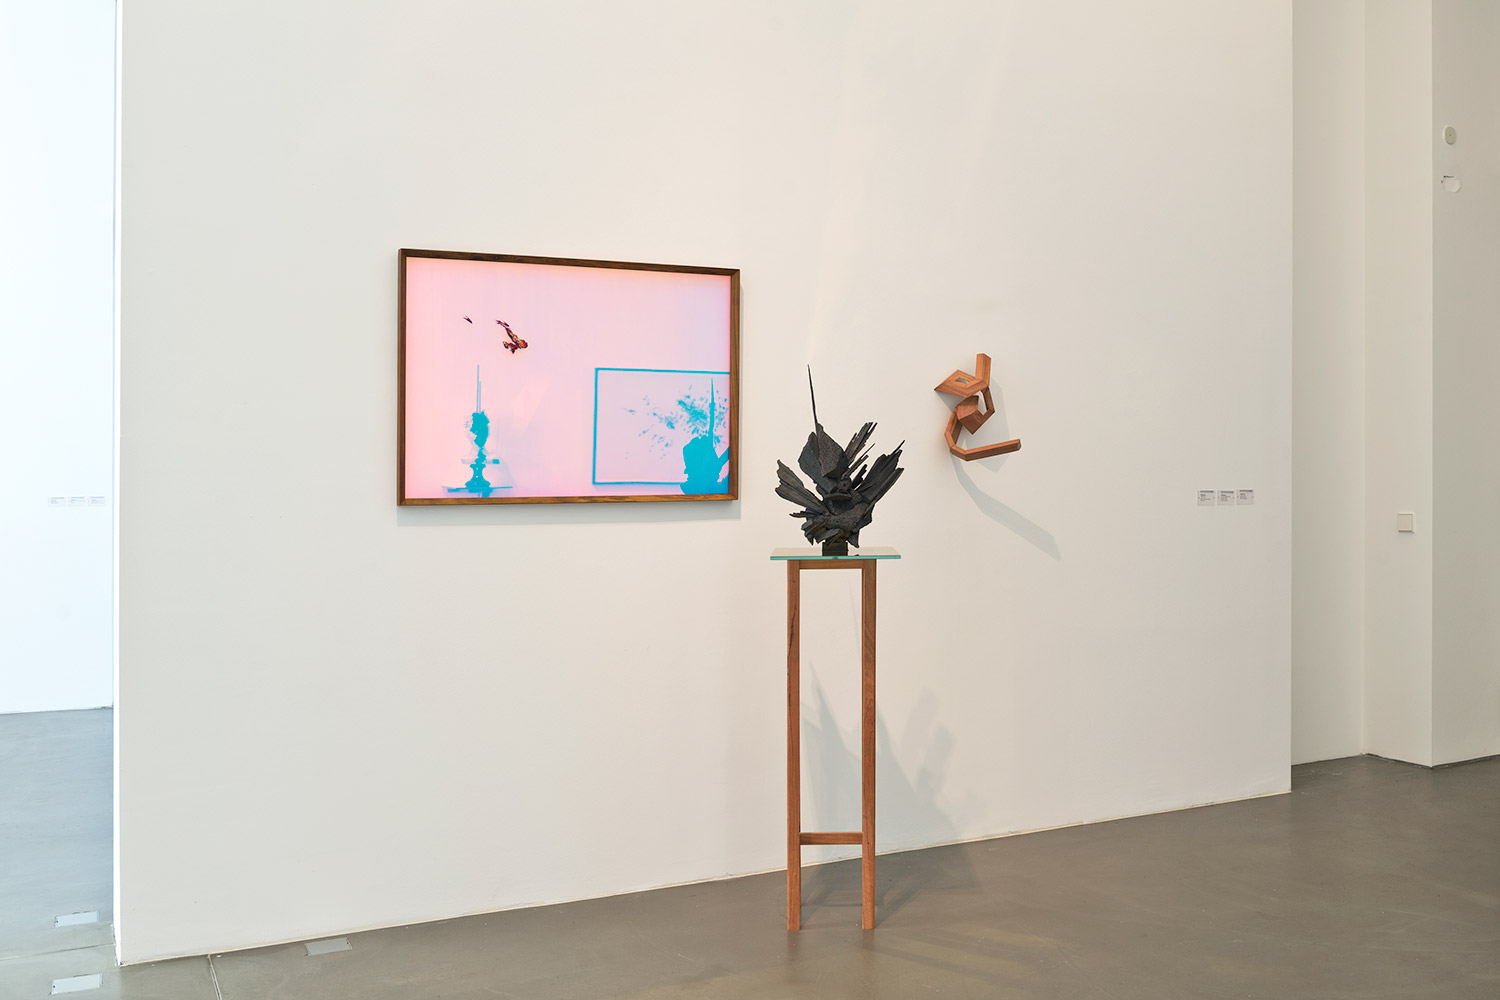 ... Installation View (LTR: Untitled, 2017, 103x73 Cm, Wood, Oil Paint,  Glass, Dichroic Film; Prism 26 (Estatic), 2016, Ed. Of 5+2AP, 54x36x16 Cm,  Bronze, ...